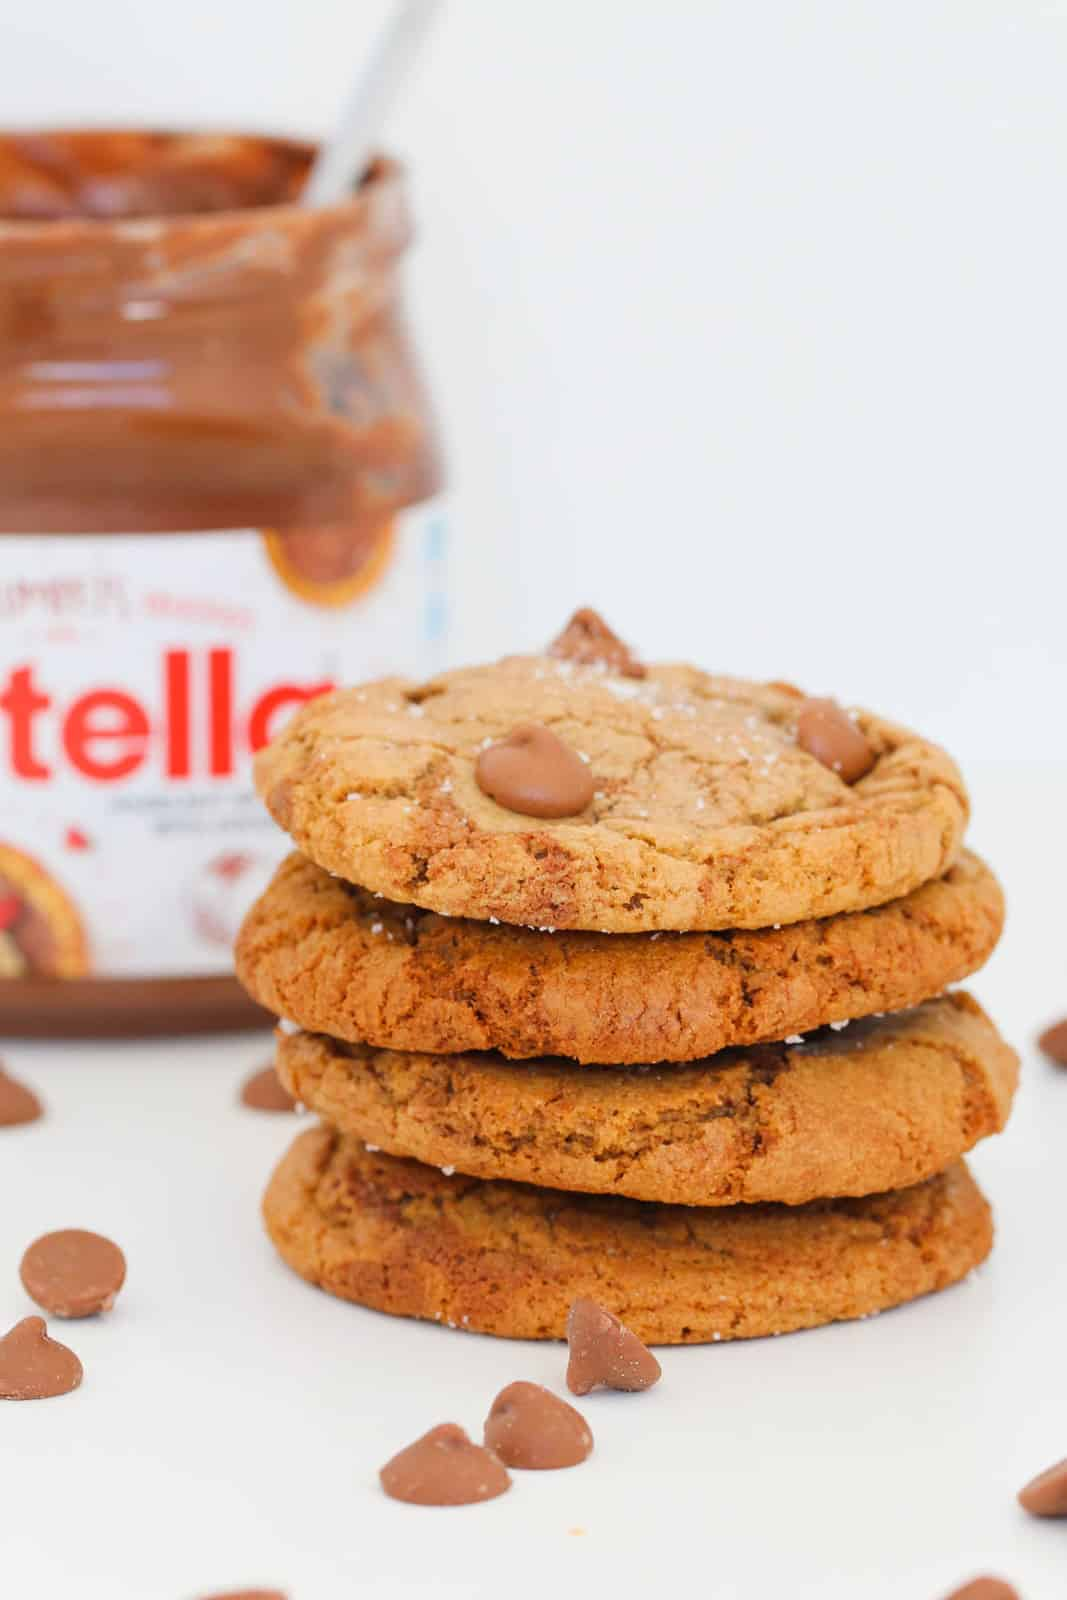 A stack of four cookies with chocolate chips and a jar of Nutella in the background.